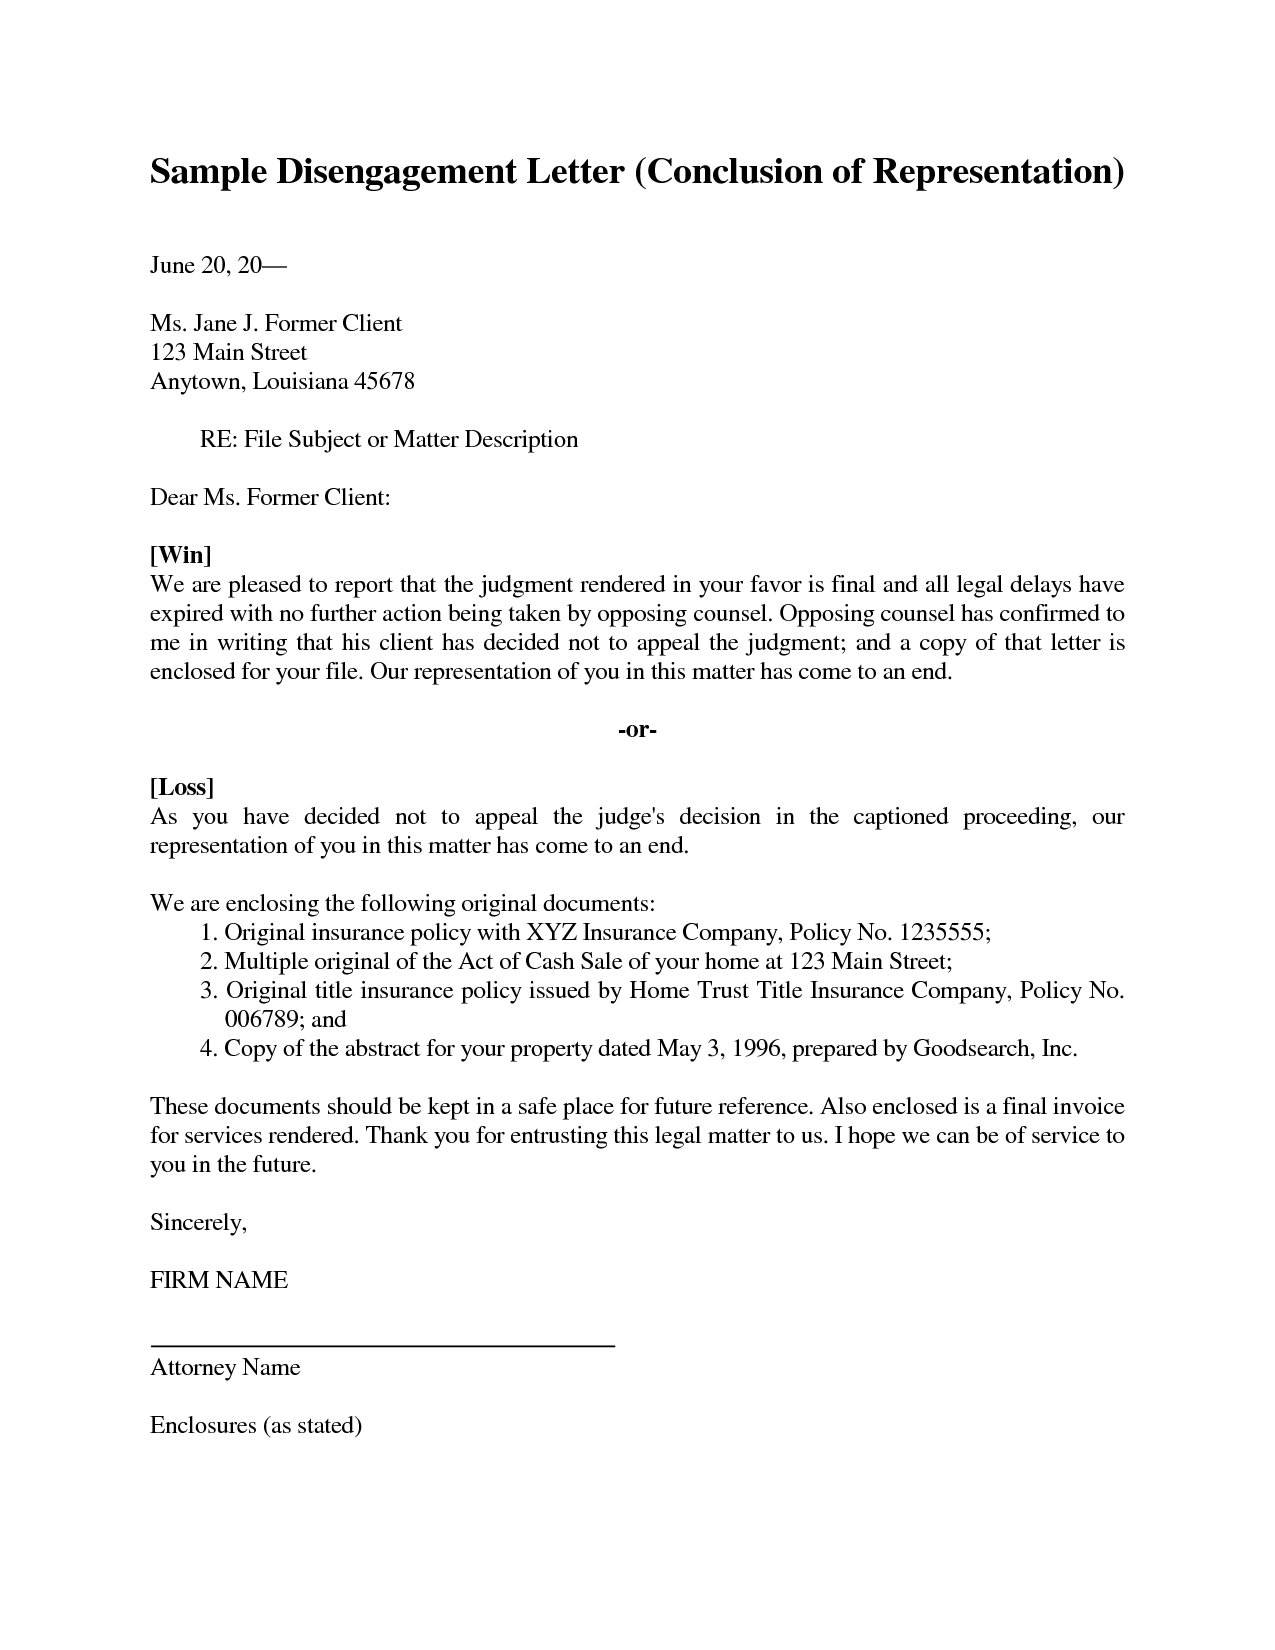 Sample legal representation letter by mlp18219 sample legal attorney authorization legal representation letter sample mlp best free home design idea inspiration spiritdancerdesigns Choice Image